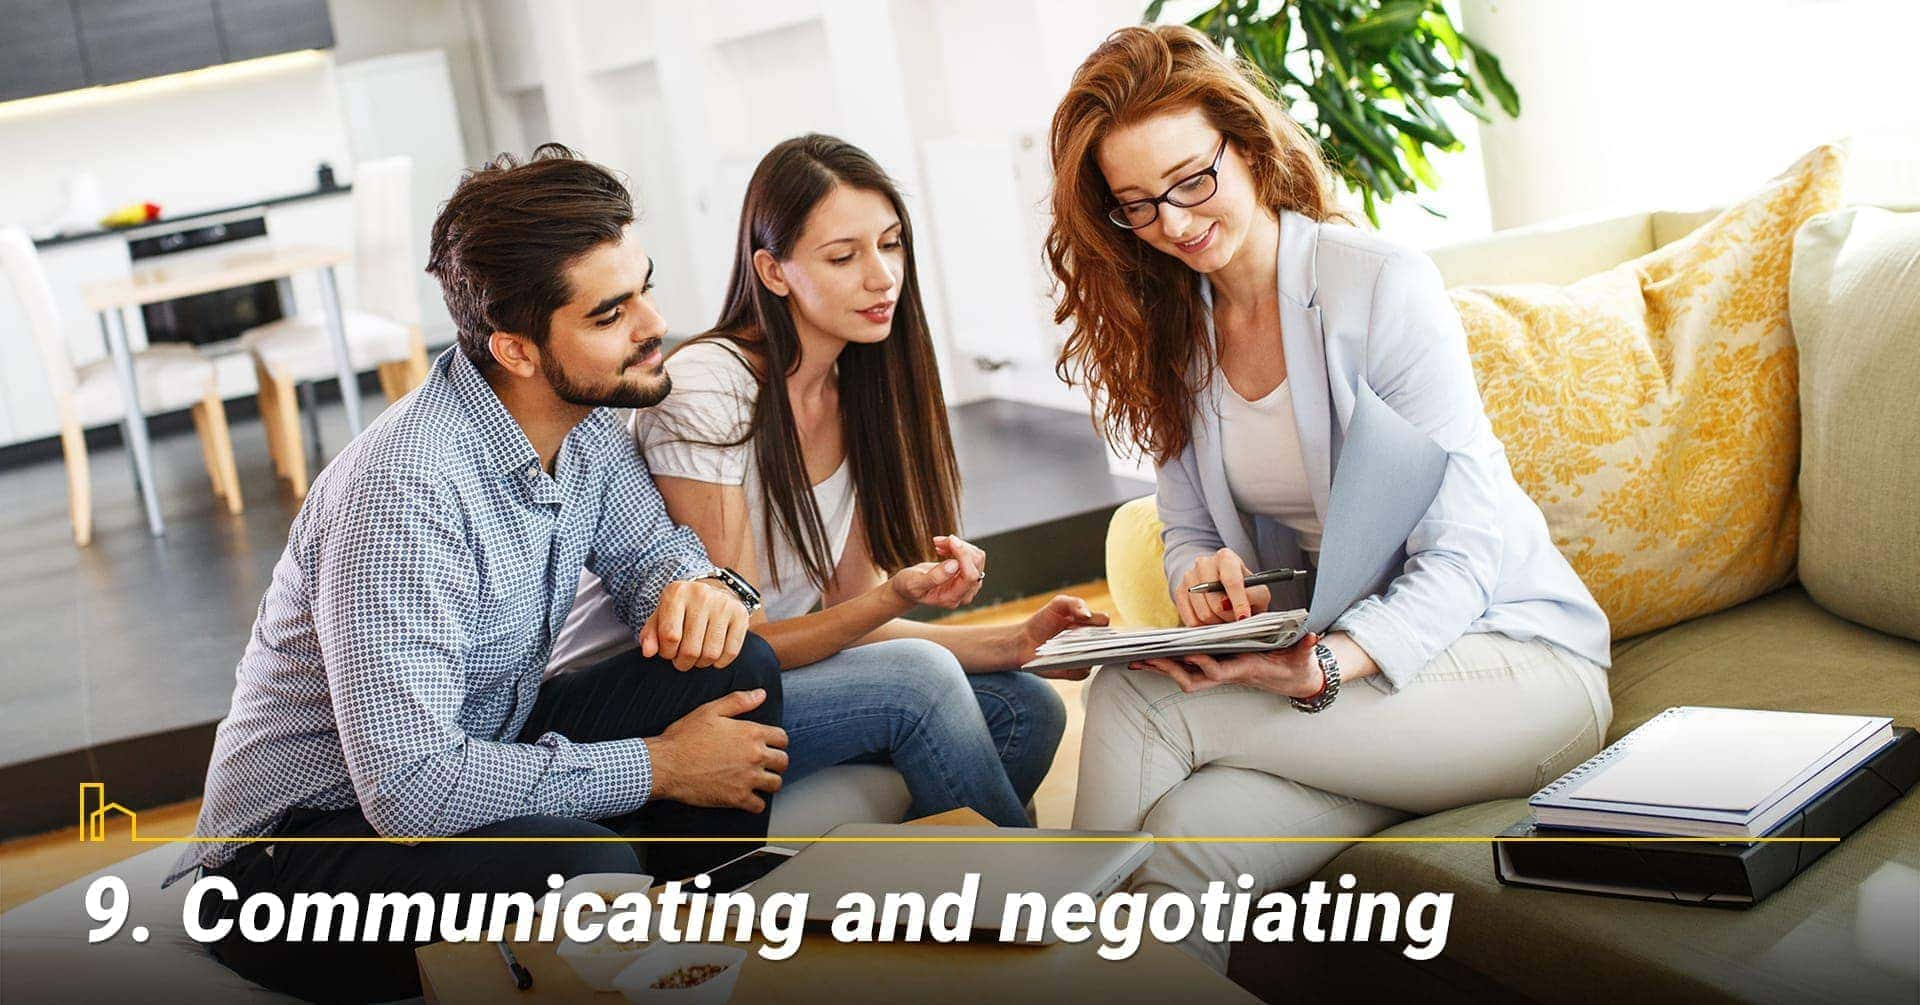 Communicating and negotiating